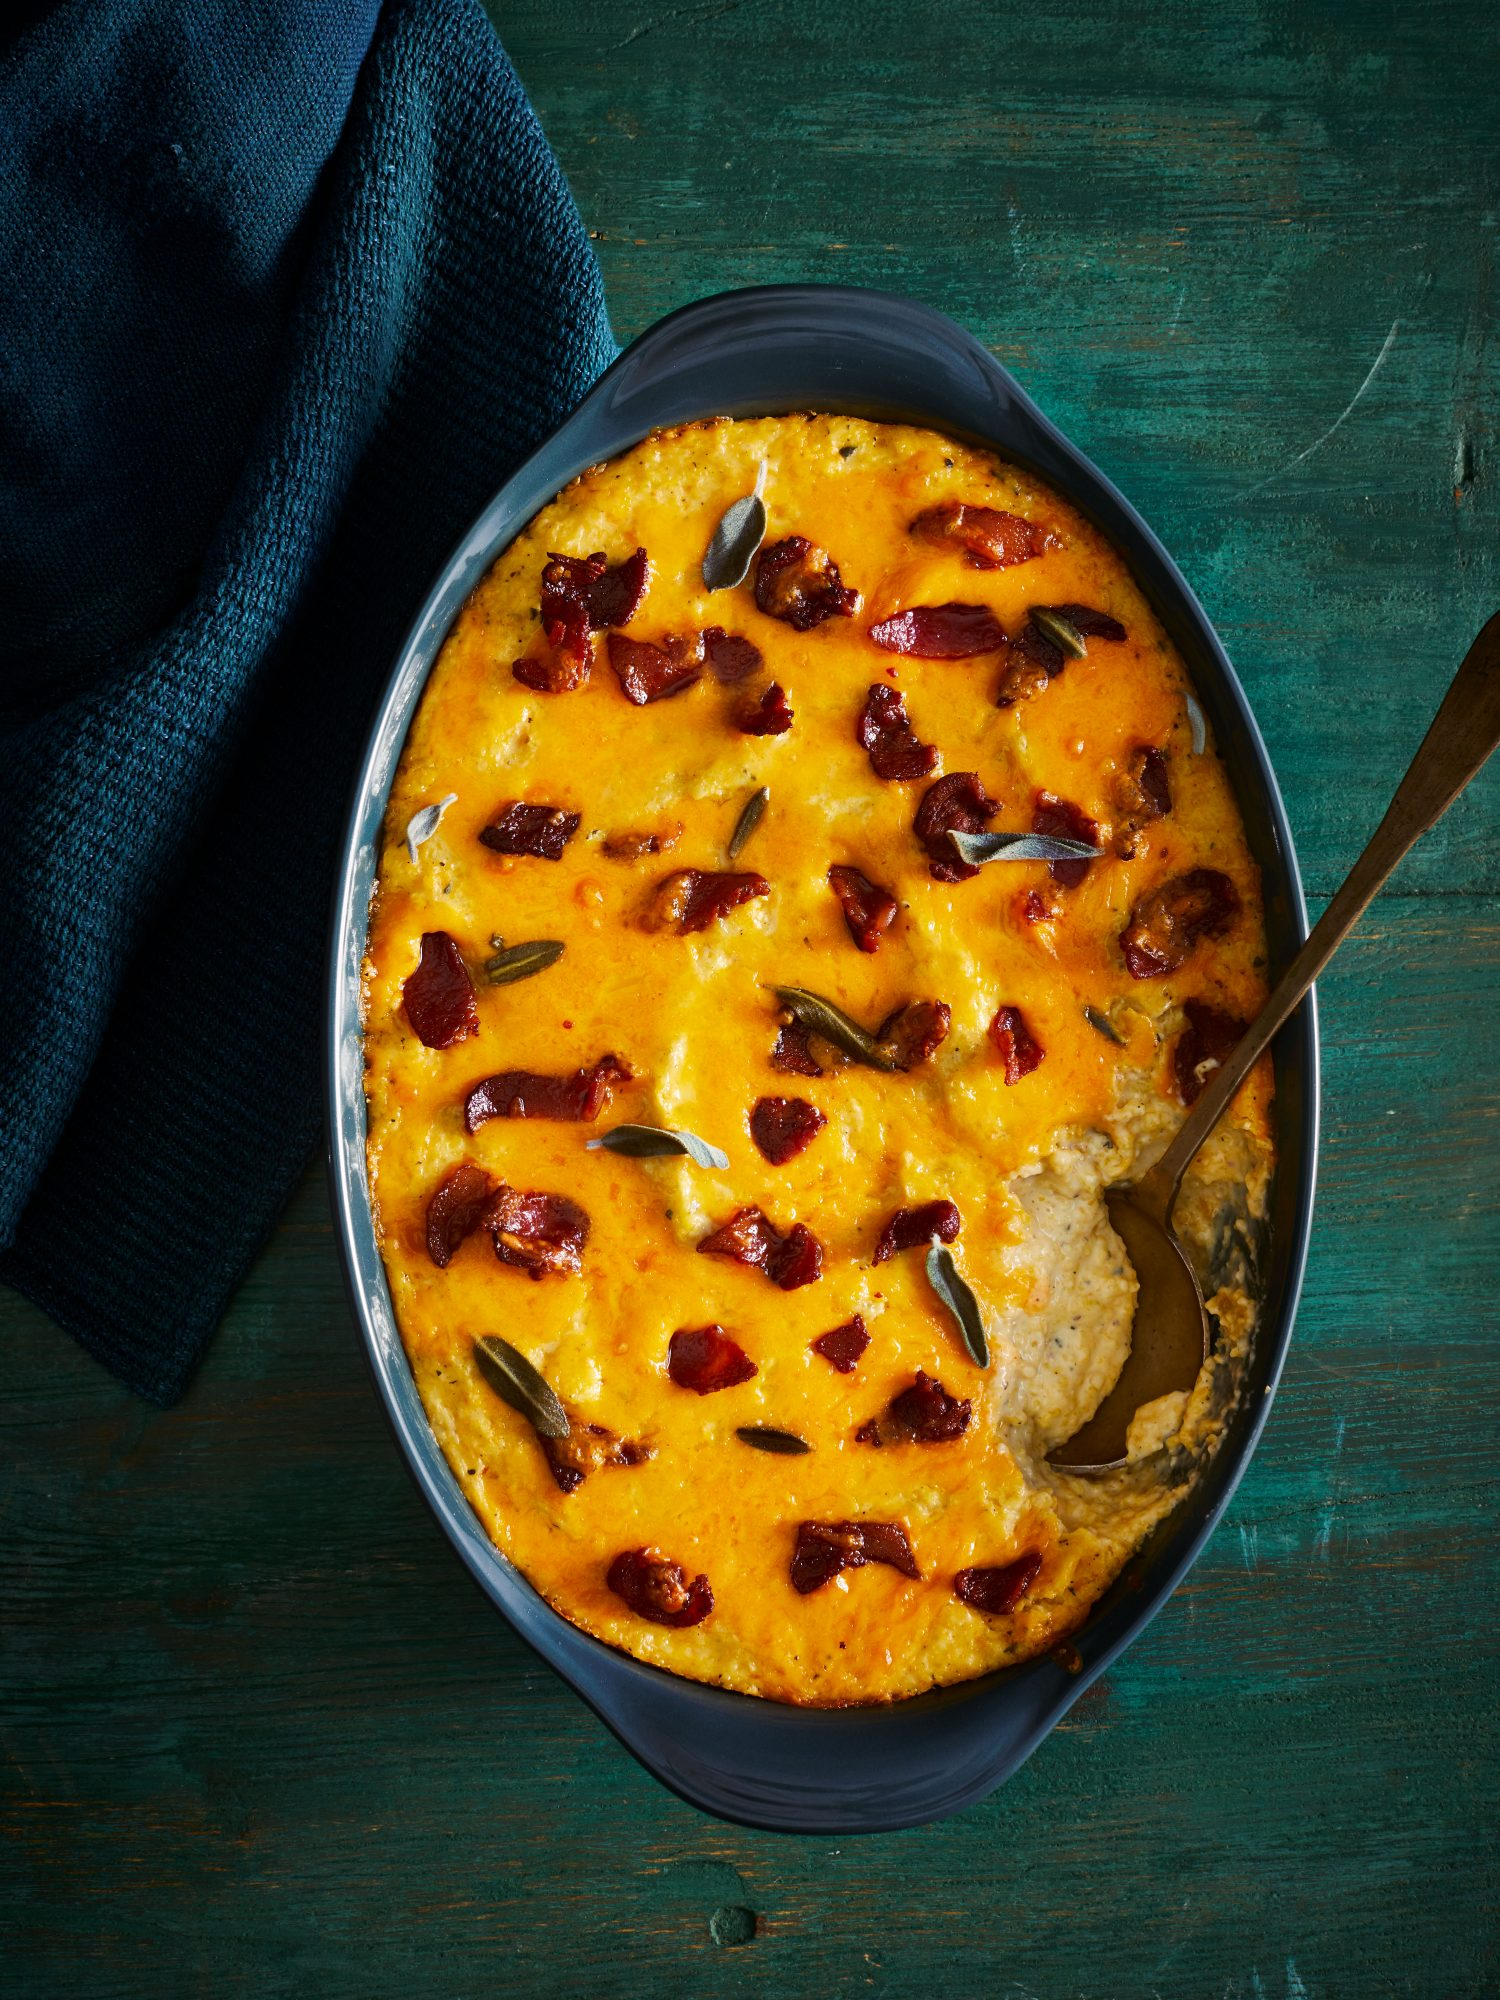 Cheesy Baked Grits with Blue Hokkaido Squash and Bacon